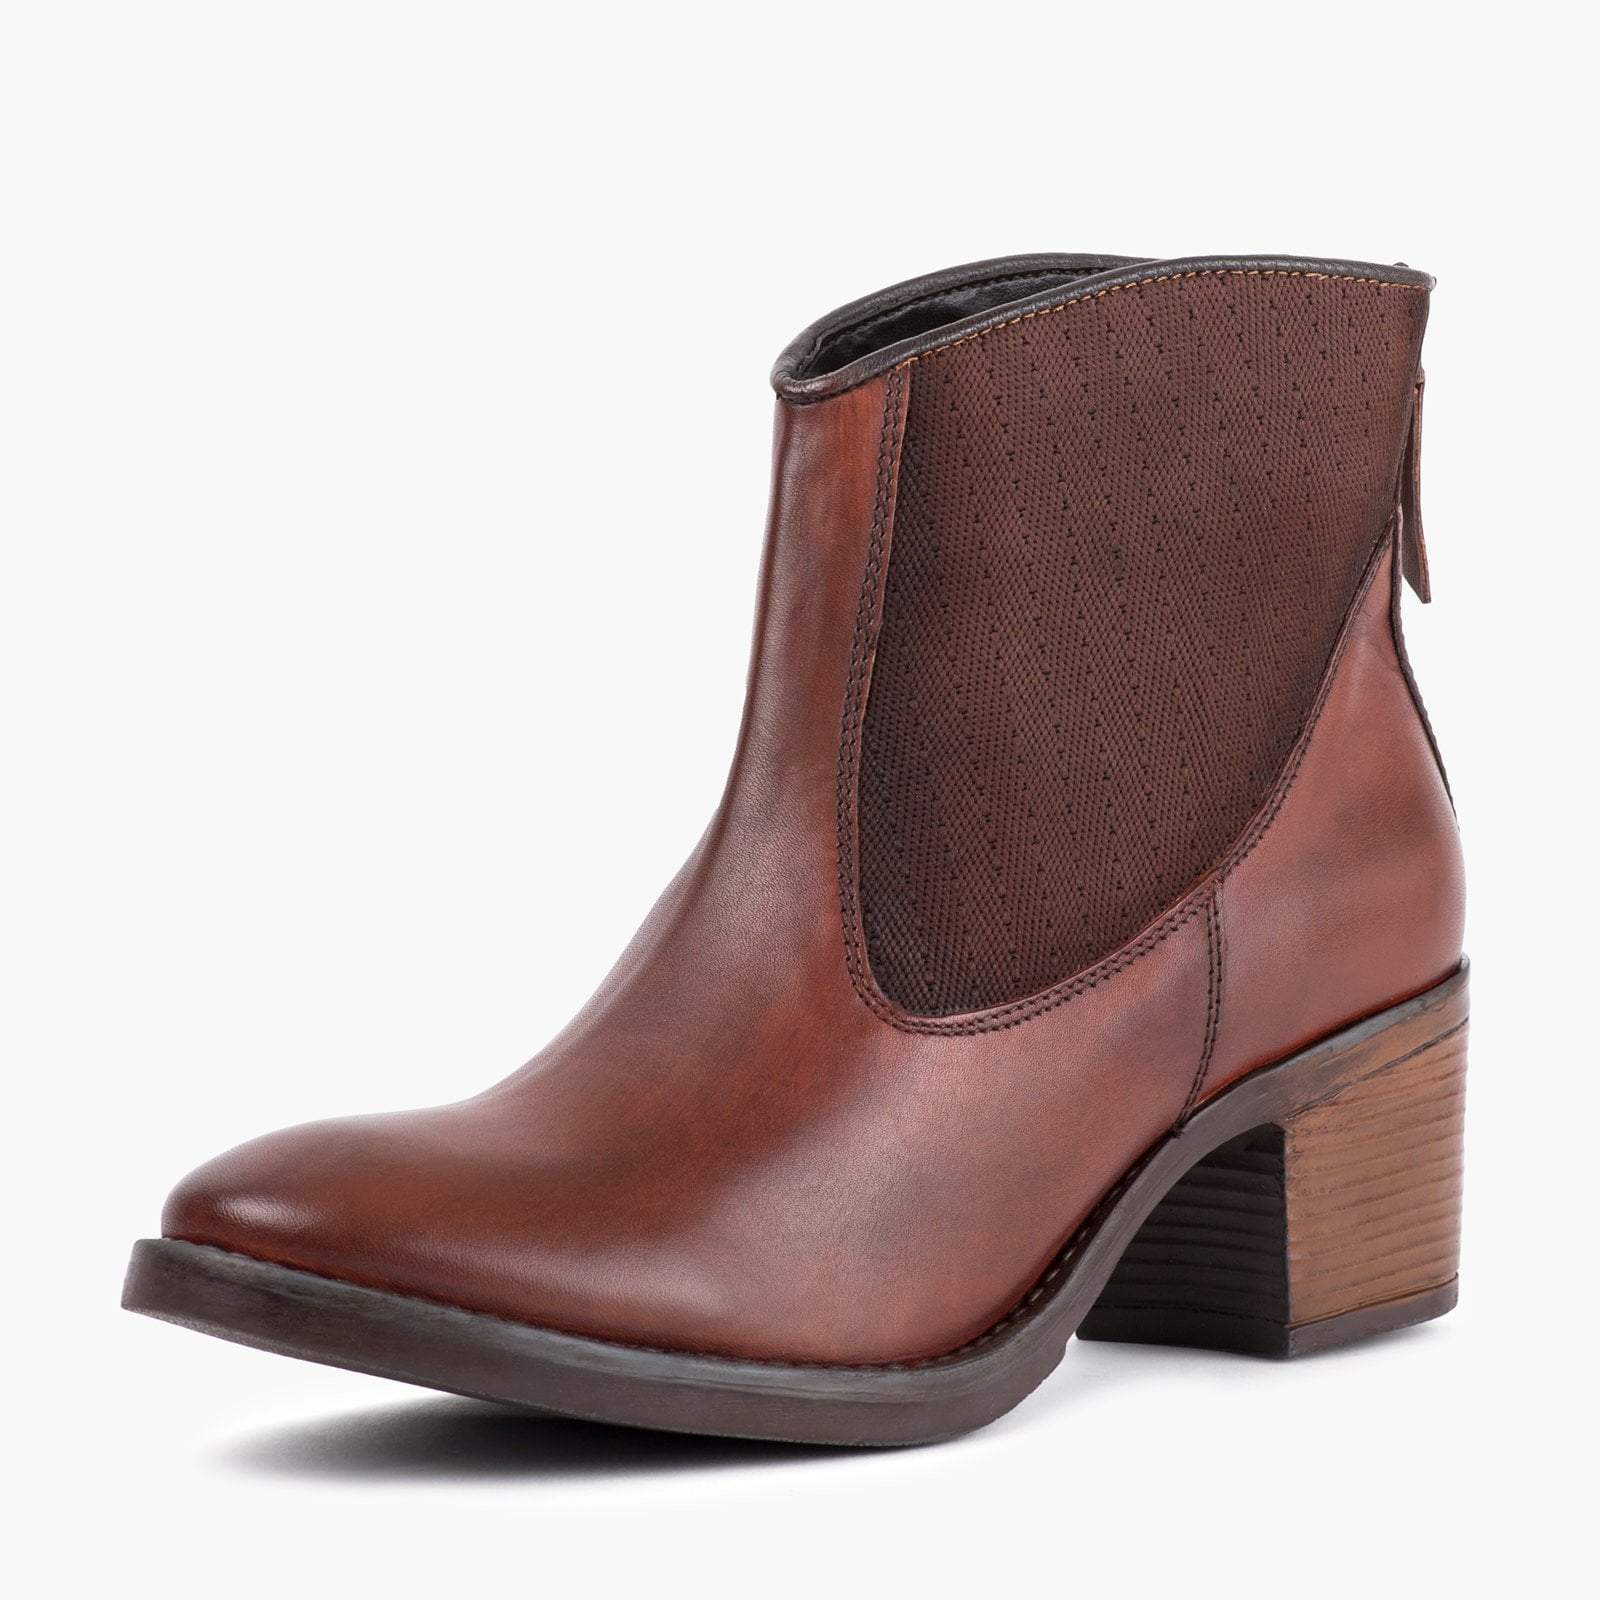 MEGAN MAHOGANY LEATHER ANKLE BOOT